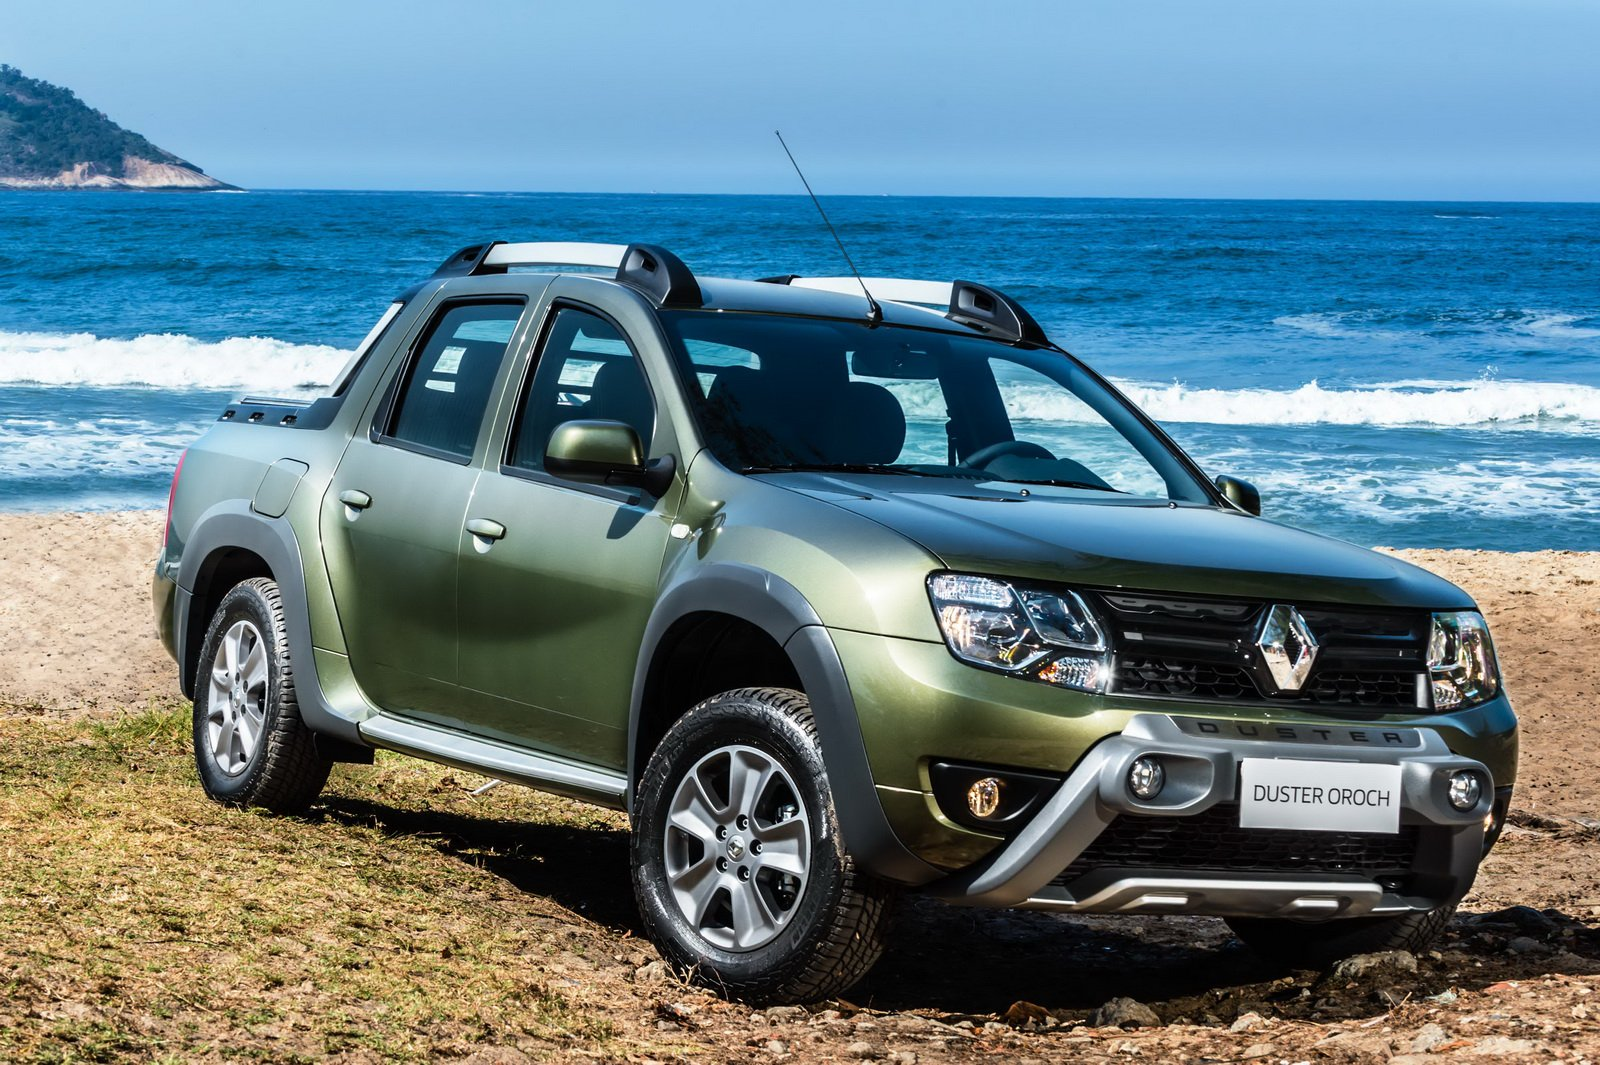 2015 renault duster oroch pickup truck cars wallpaper 1600x1065 812235 wallpaperup. Black Bedroom Furniture Sets. Home Design Ideas